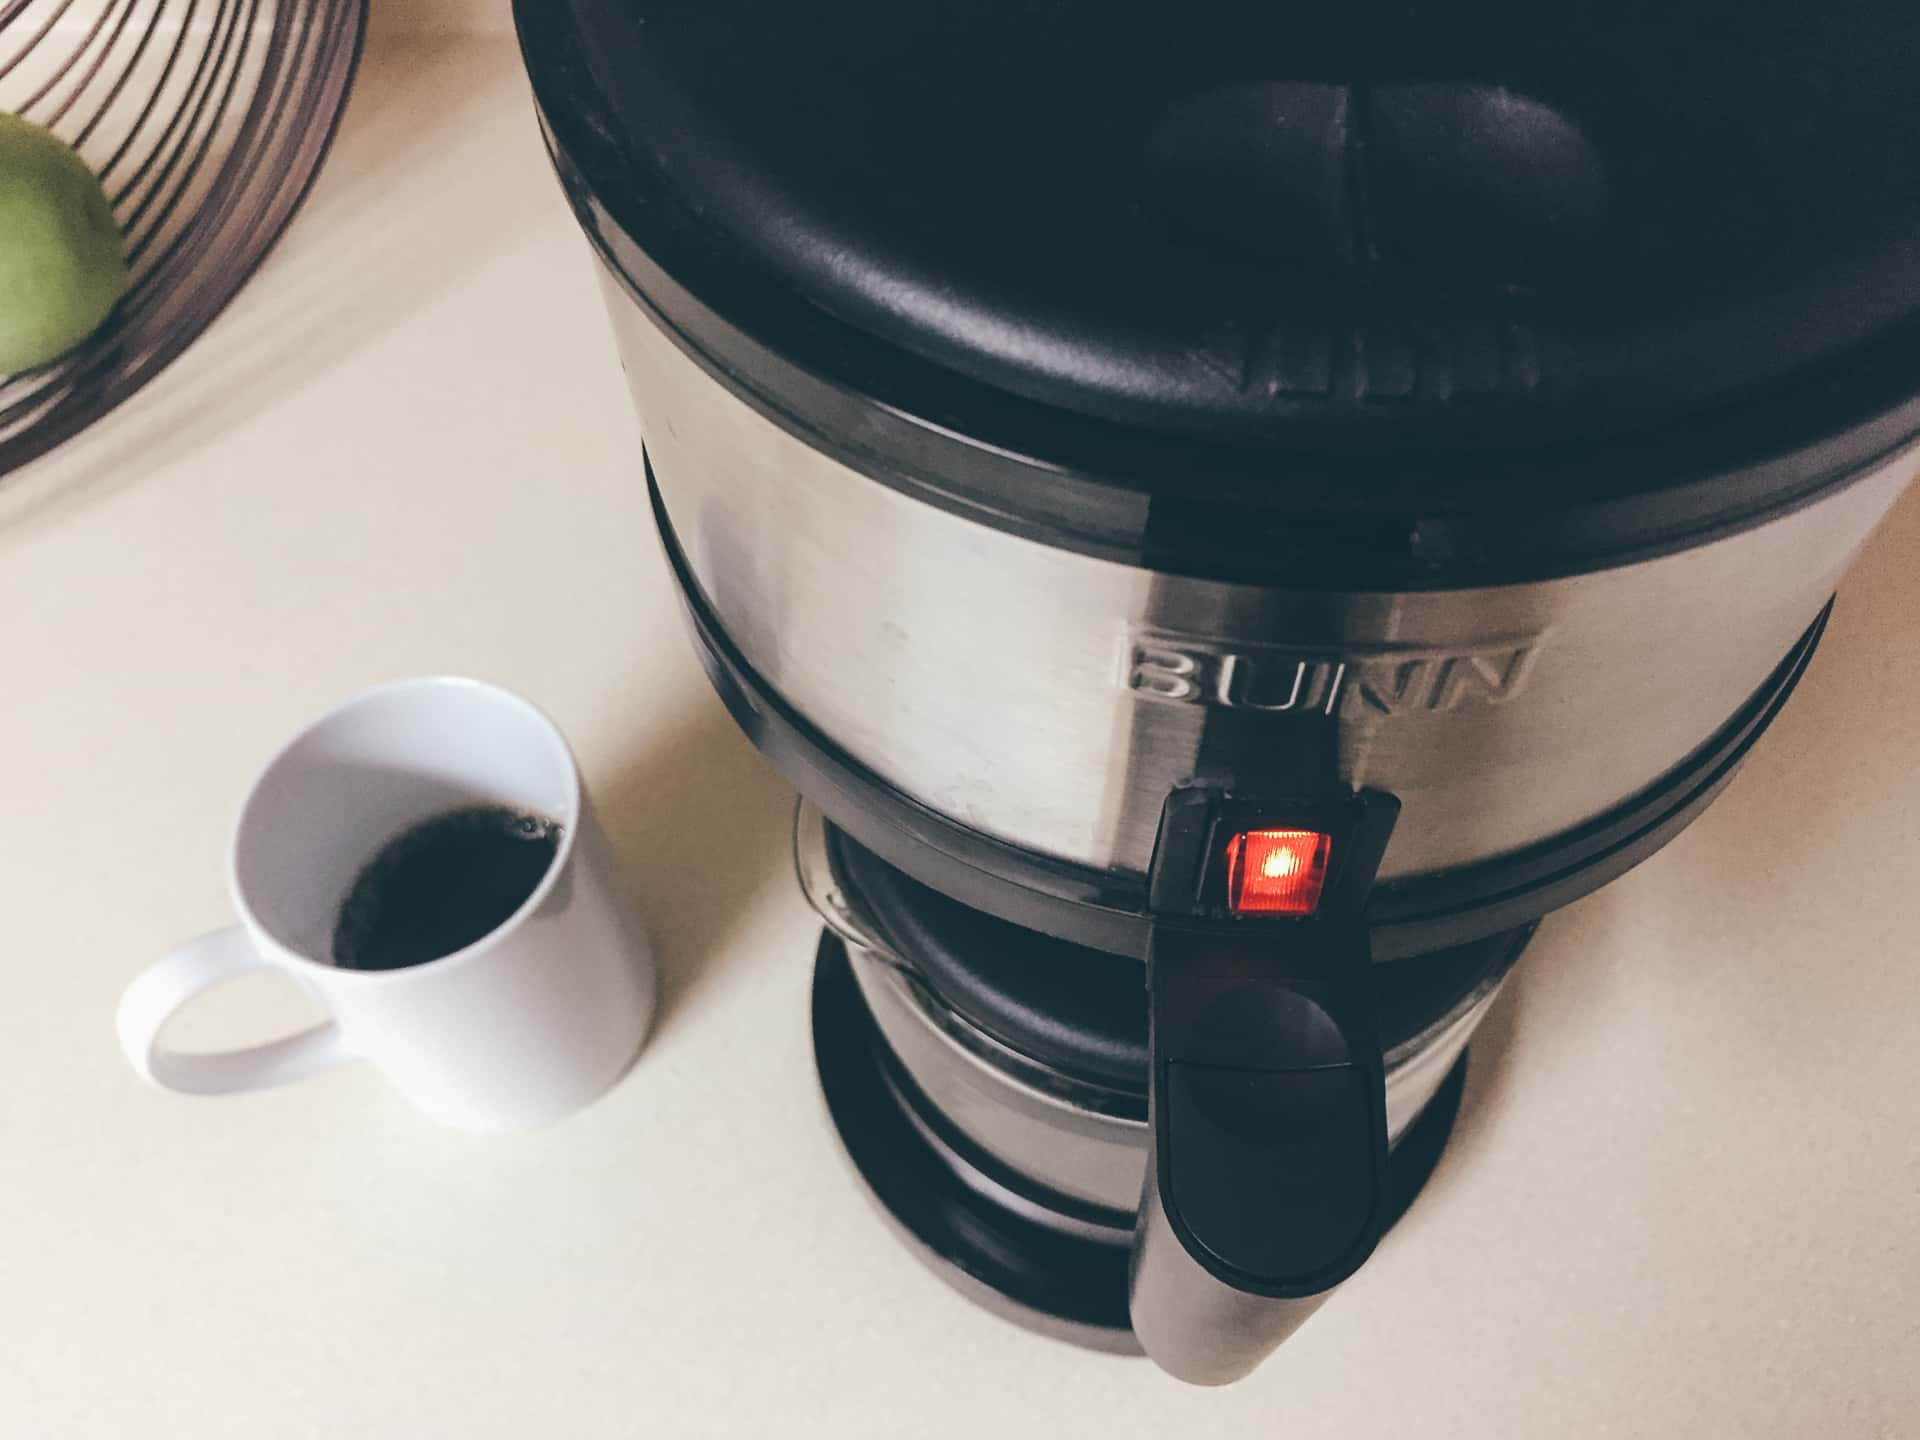 Bunn Velocity Brew Coffee Maker